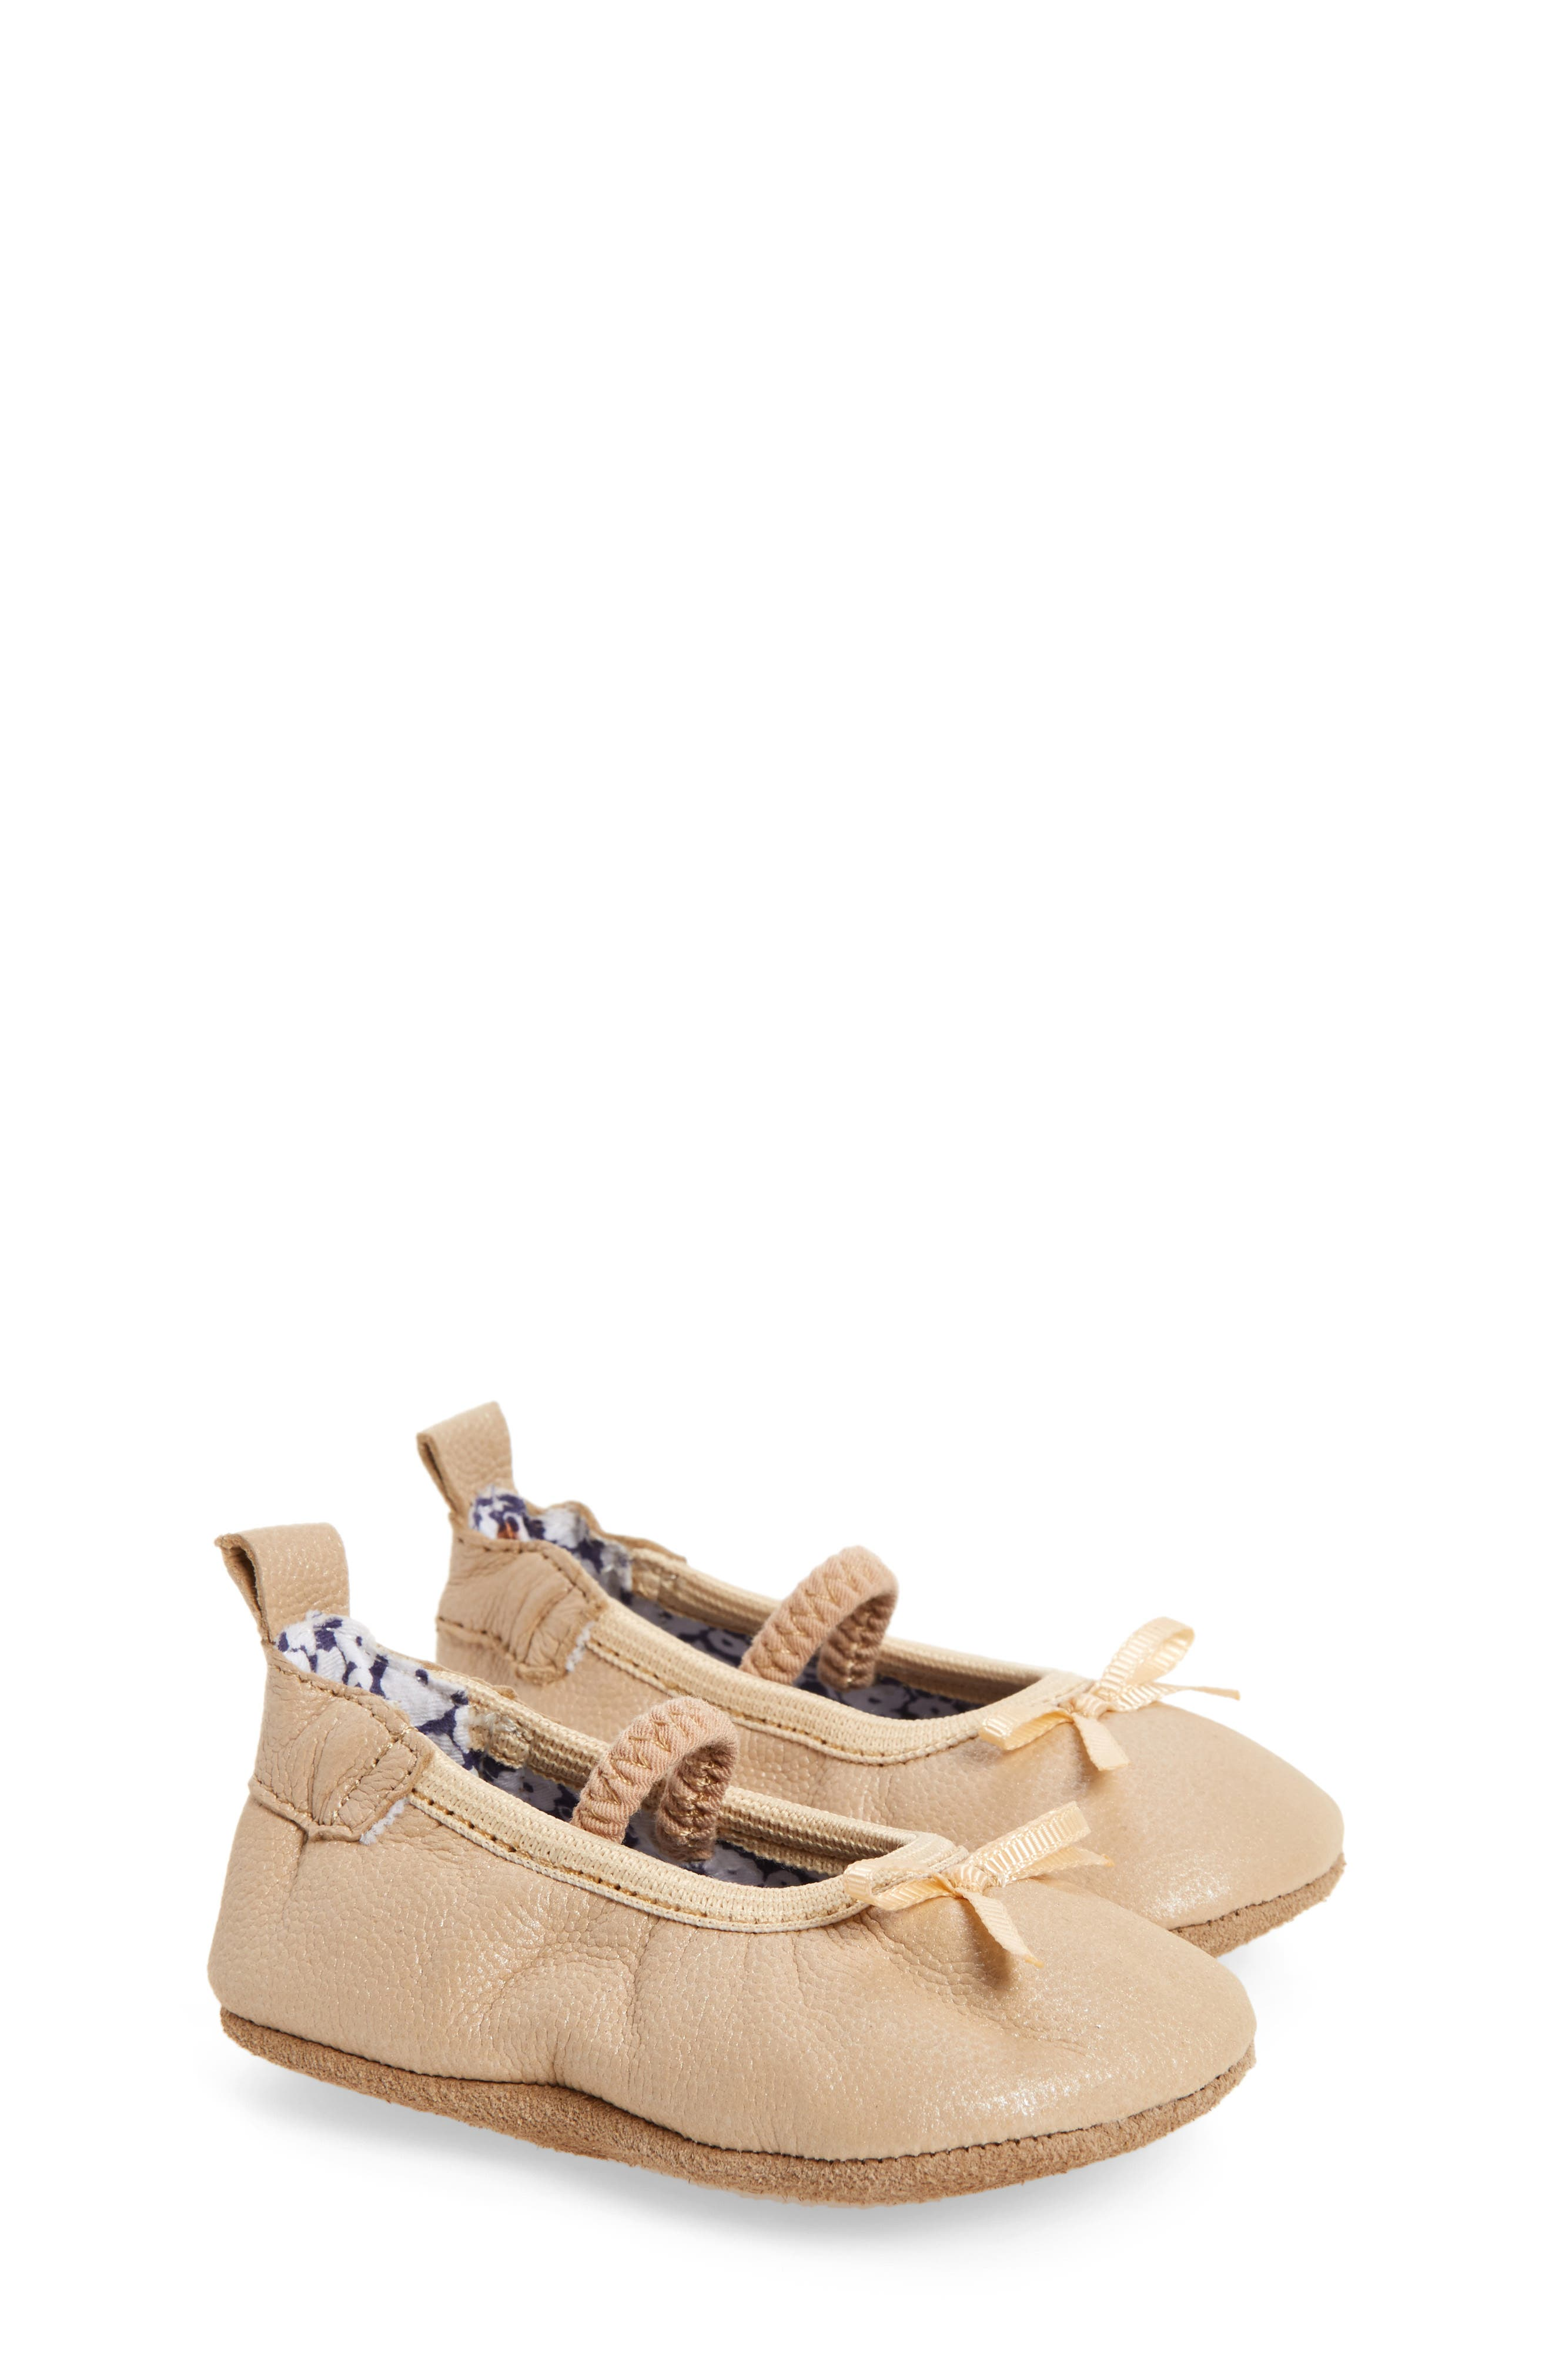 Rachel Ballet Flat,                         Main,                         color, 270